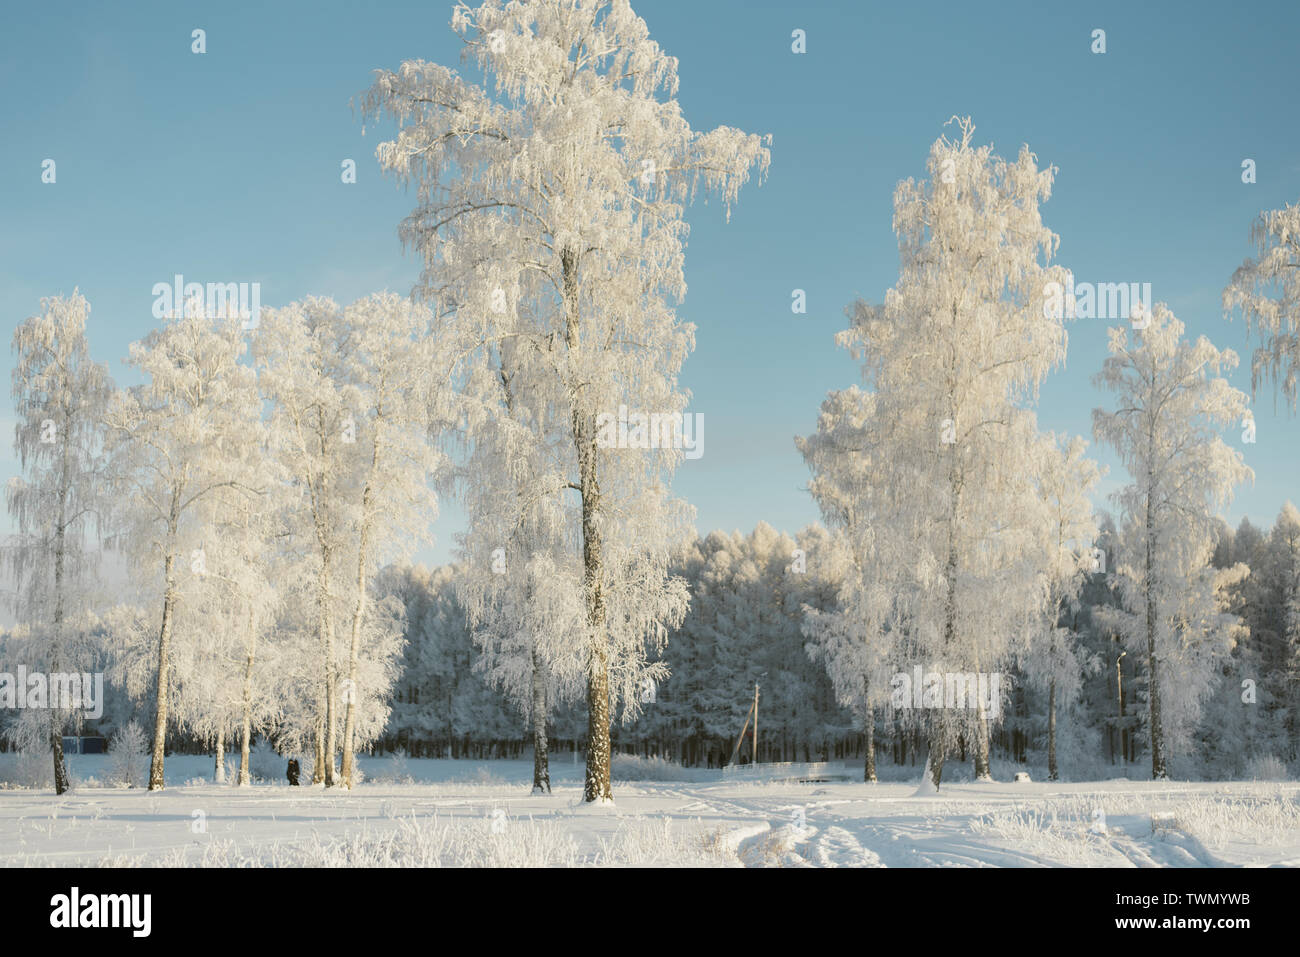 trees in frost in a field in the forest. Fir trees and pines covered with snow outside the city. Stock Photo